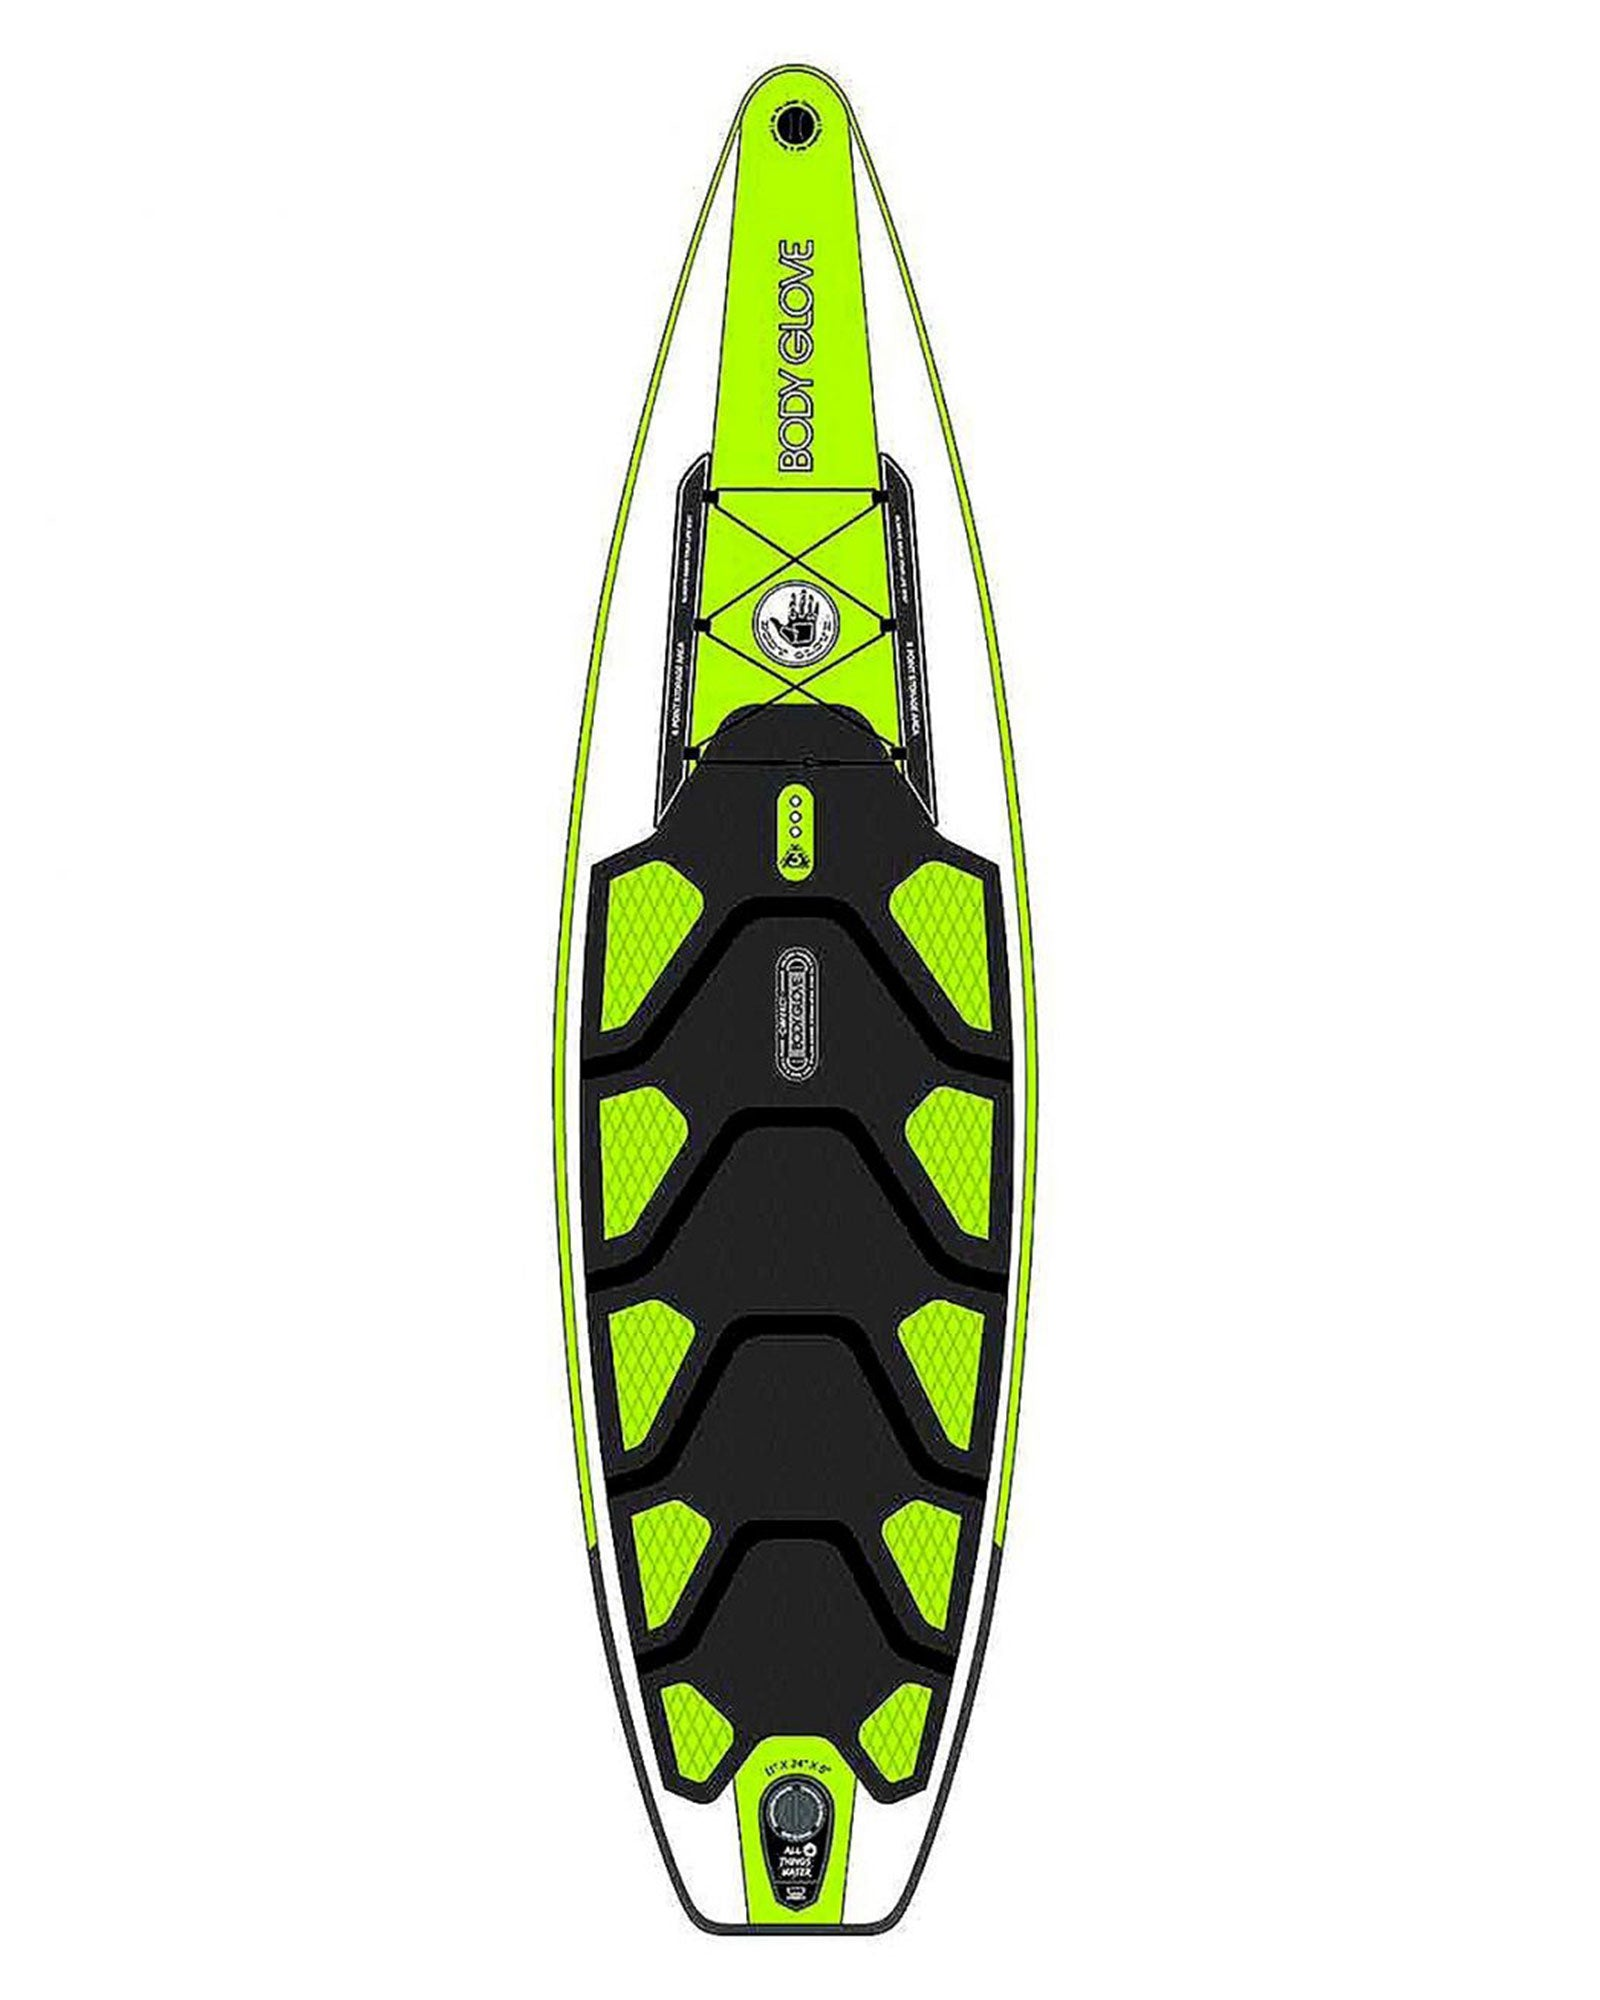 Outfitter 11 Commercial-Grade Inflatable Stand Up Paddle Board (ISUP) with Bag, Paddle & Pump